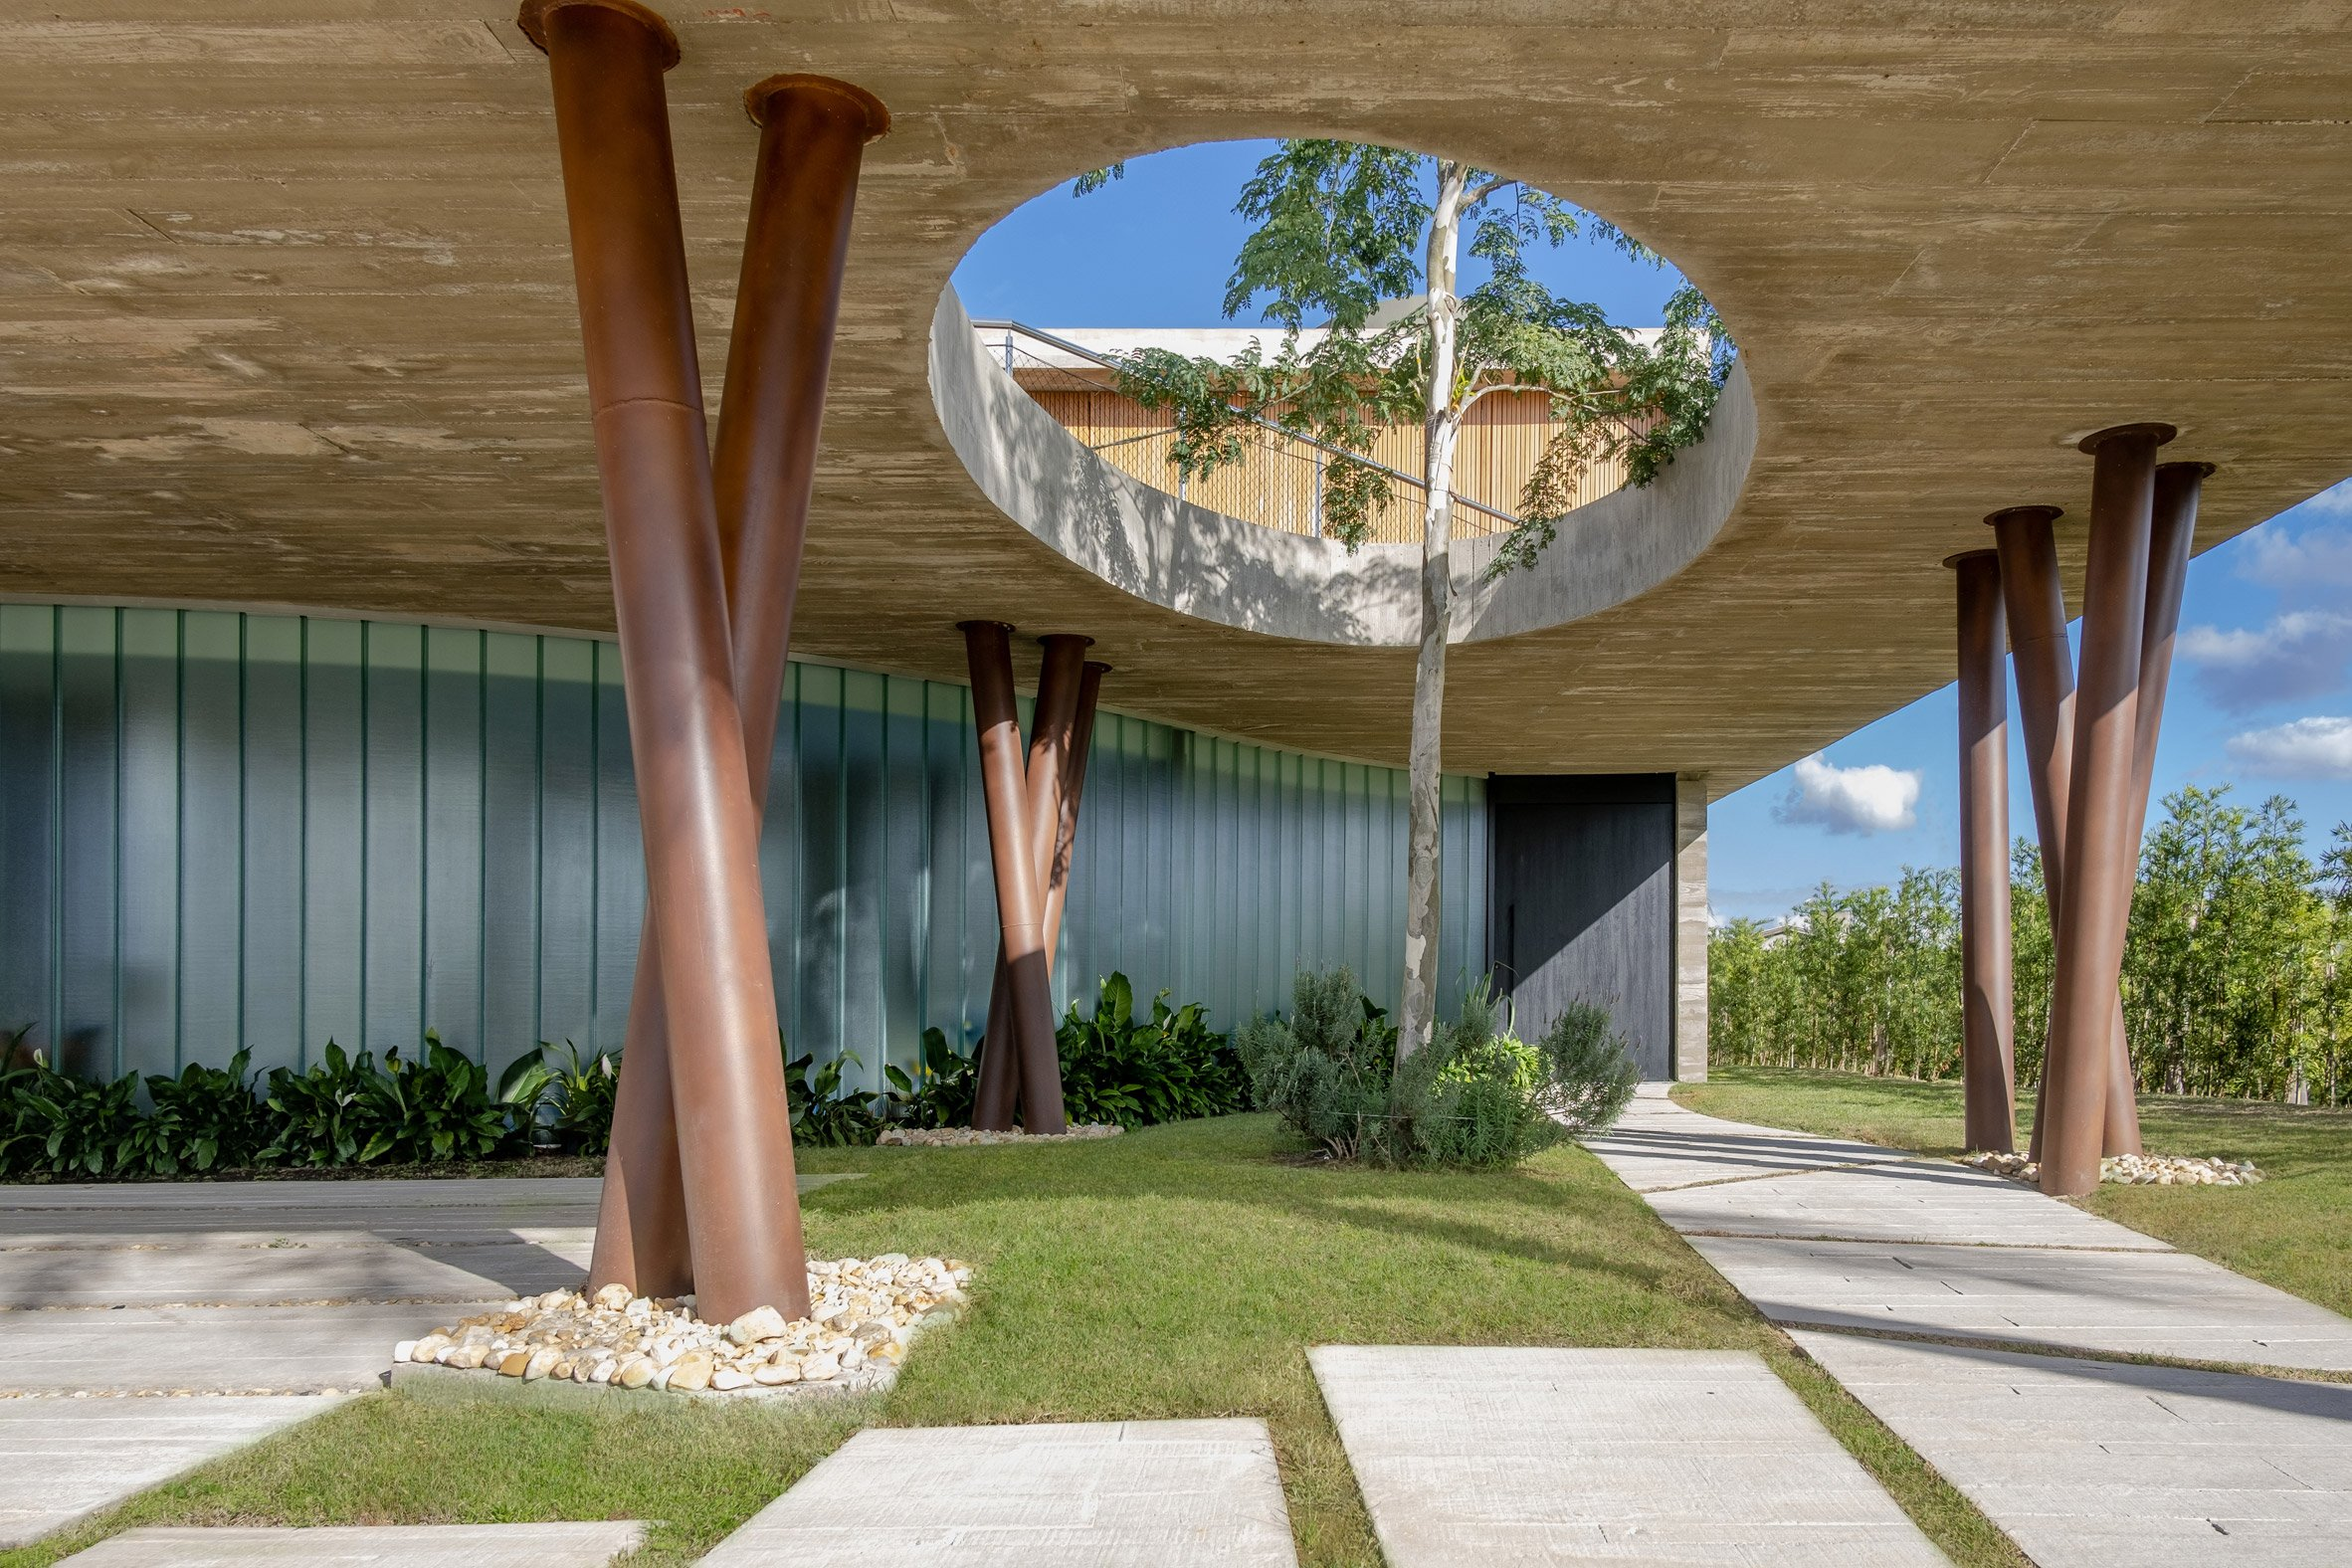 Anada House has a curved walkway supported by columns